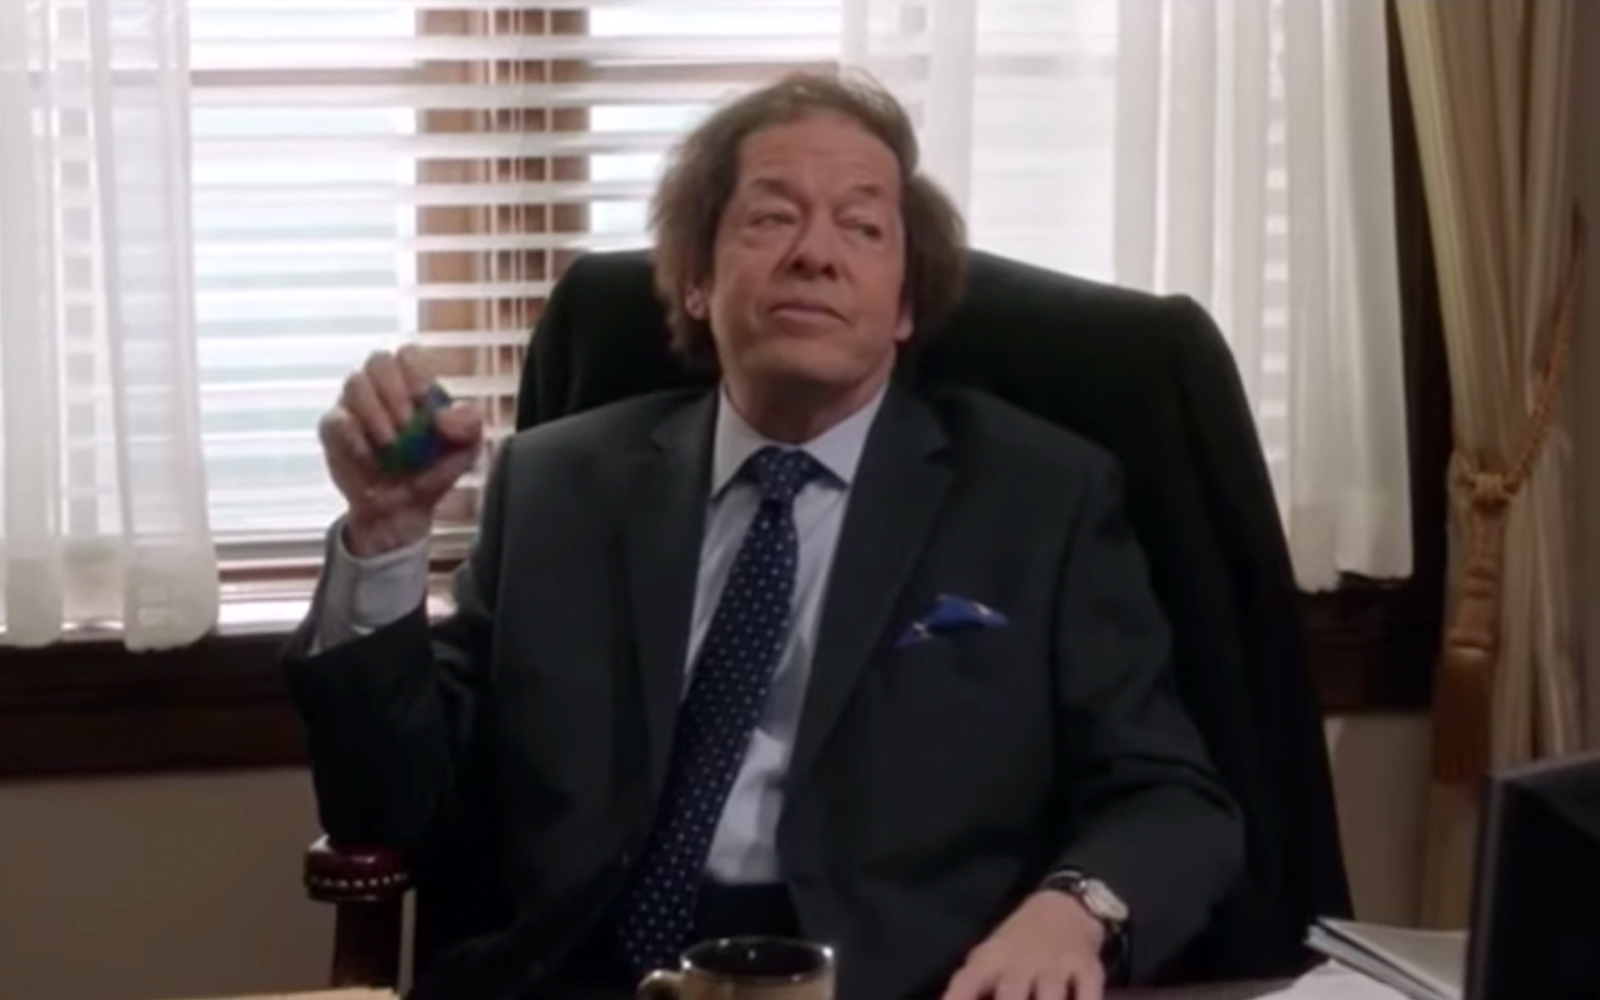 Is The Veep Character Sherman Tanz An Anti Semitic Caricature